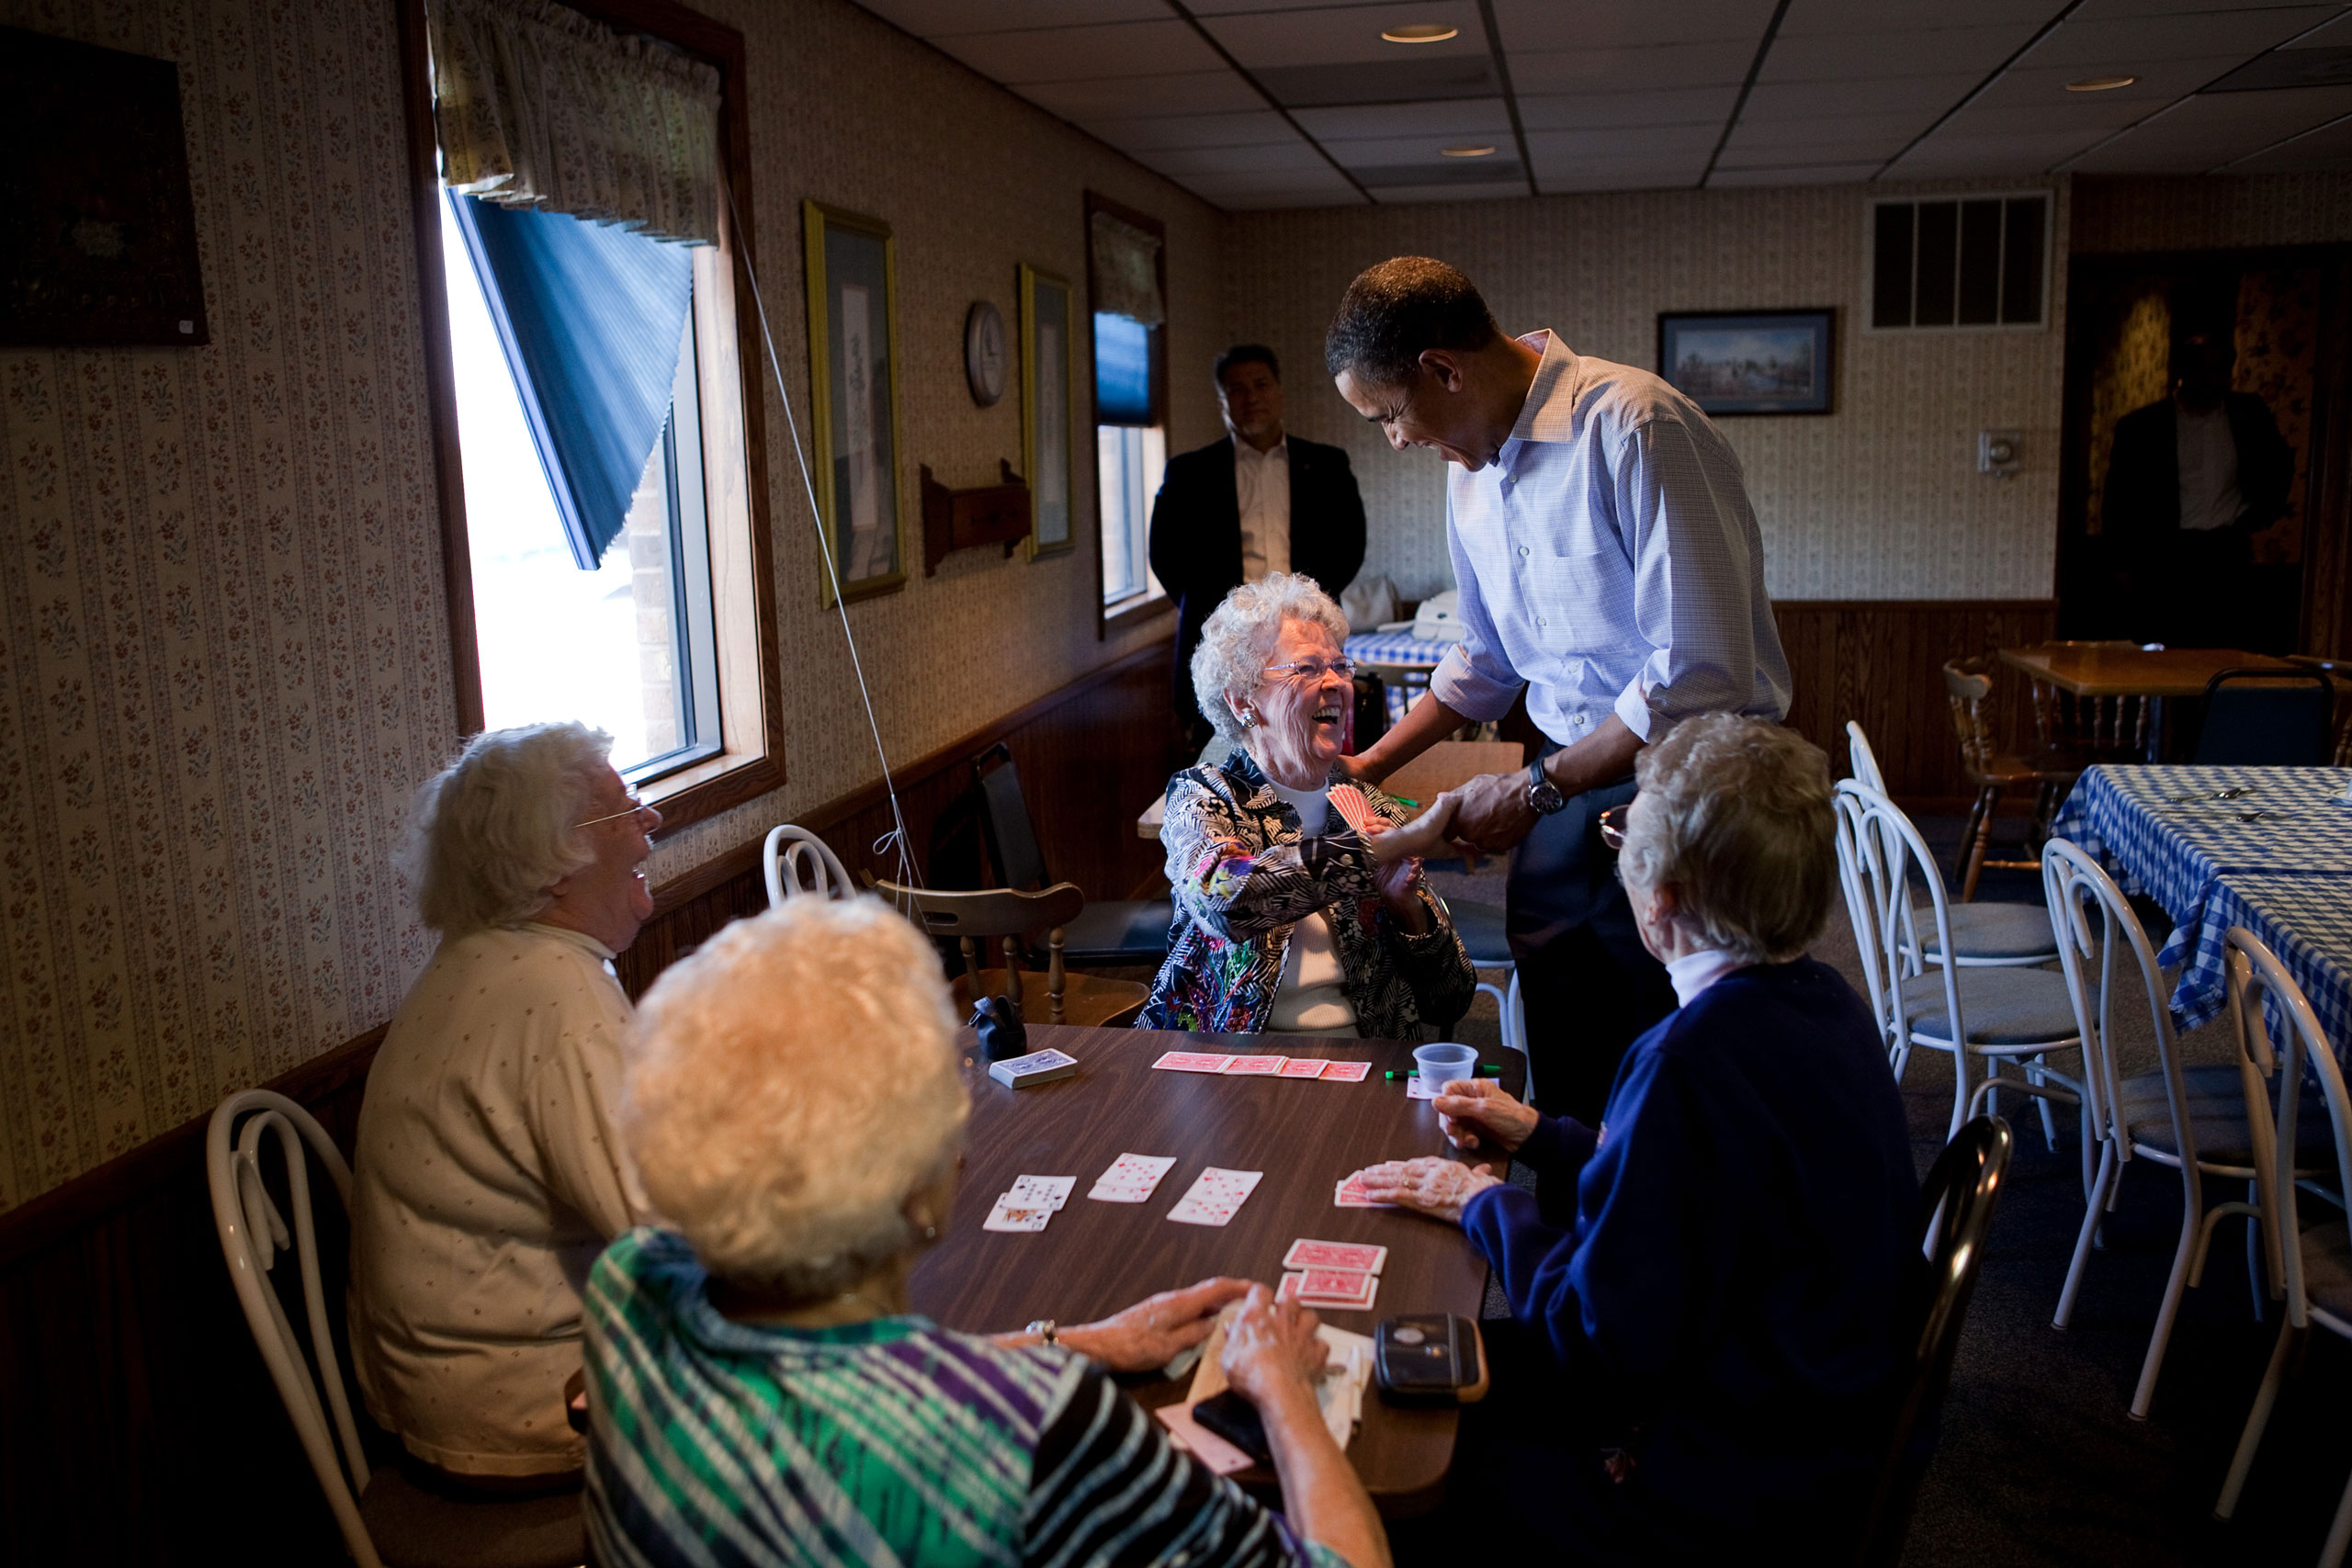 President Barack Obama visits with patrons at Jerry's Family Restaurant in Mount Pleasant, Iowa, April 27, 2010